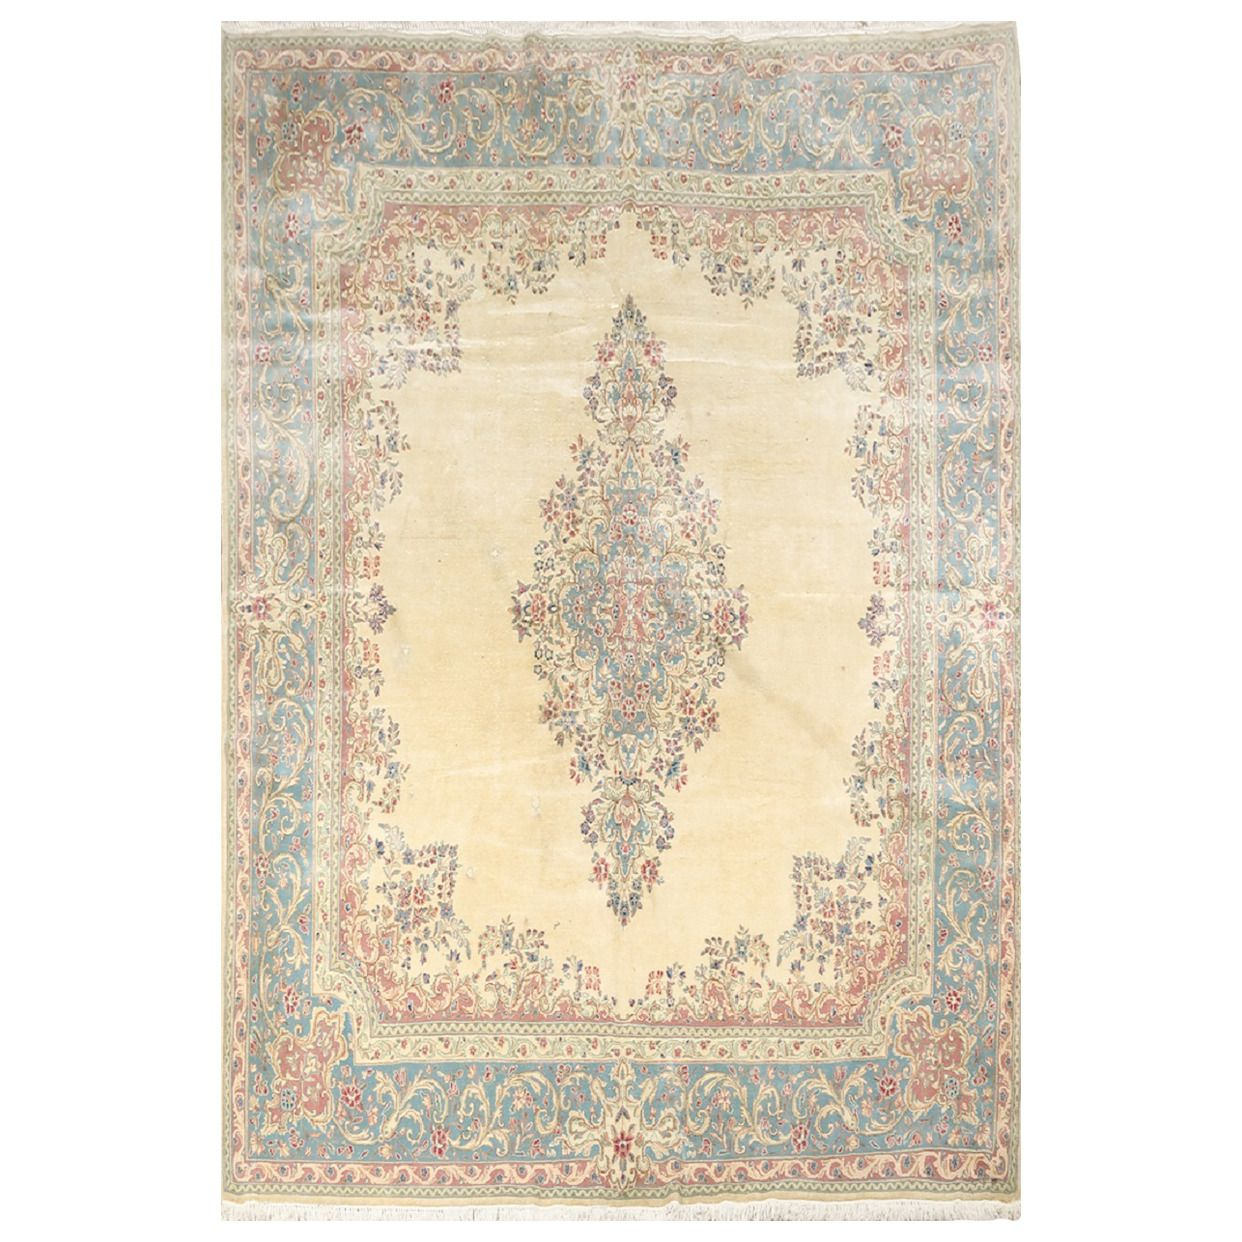 Vintage Persian Kerman Rug With Soft Turquoise Cream And Mauve Colors 1stdibs